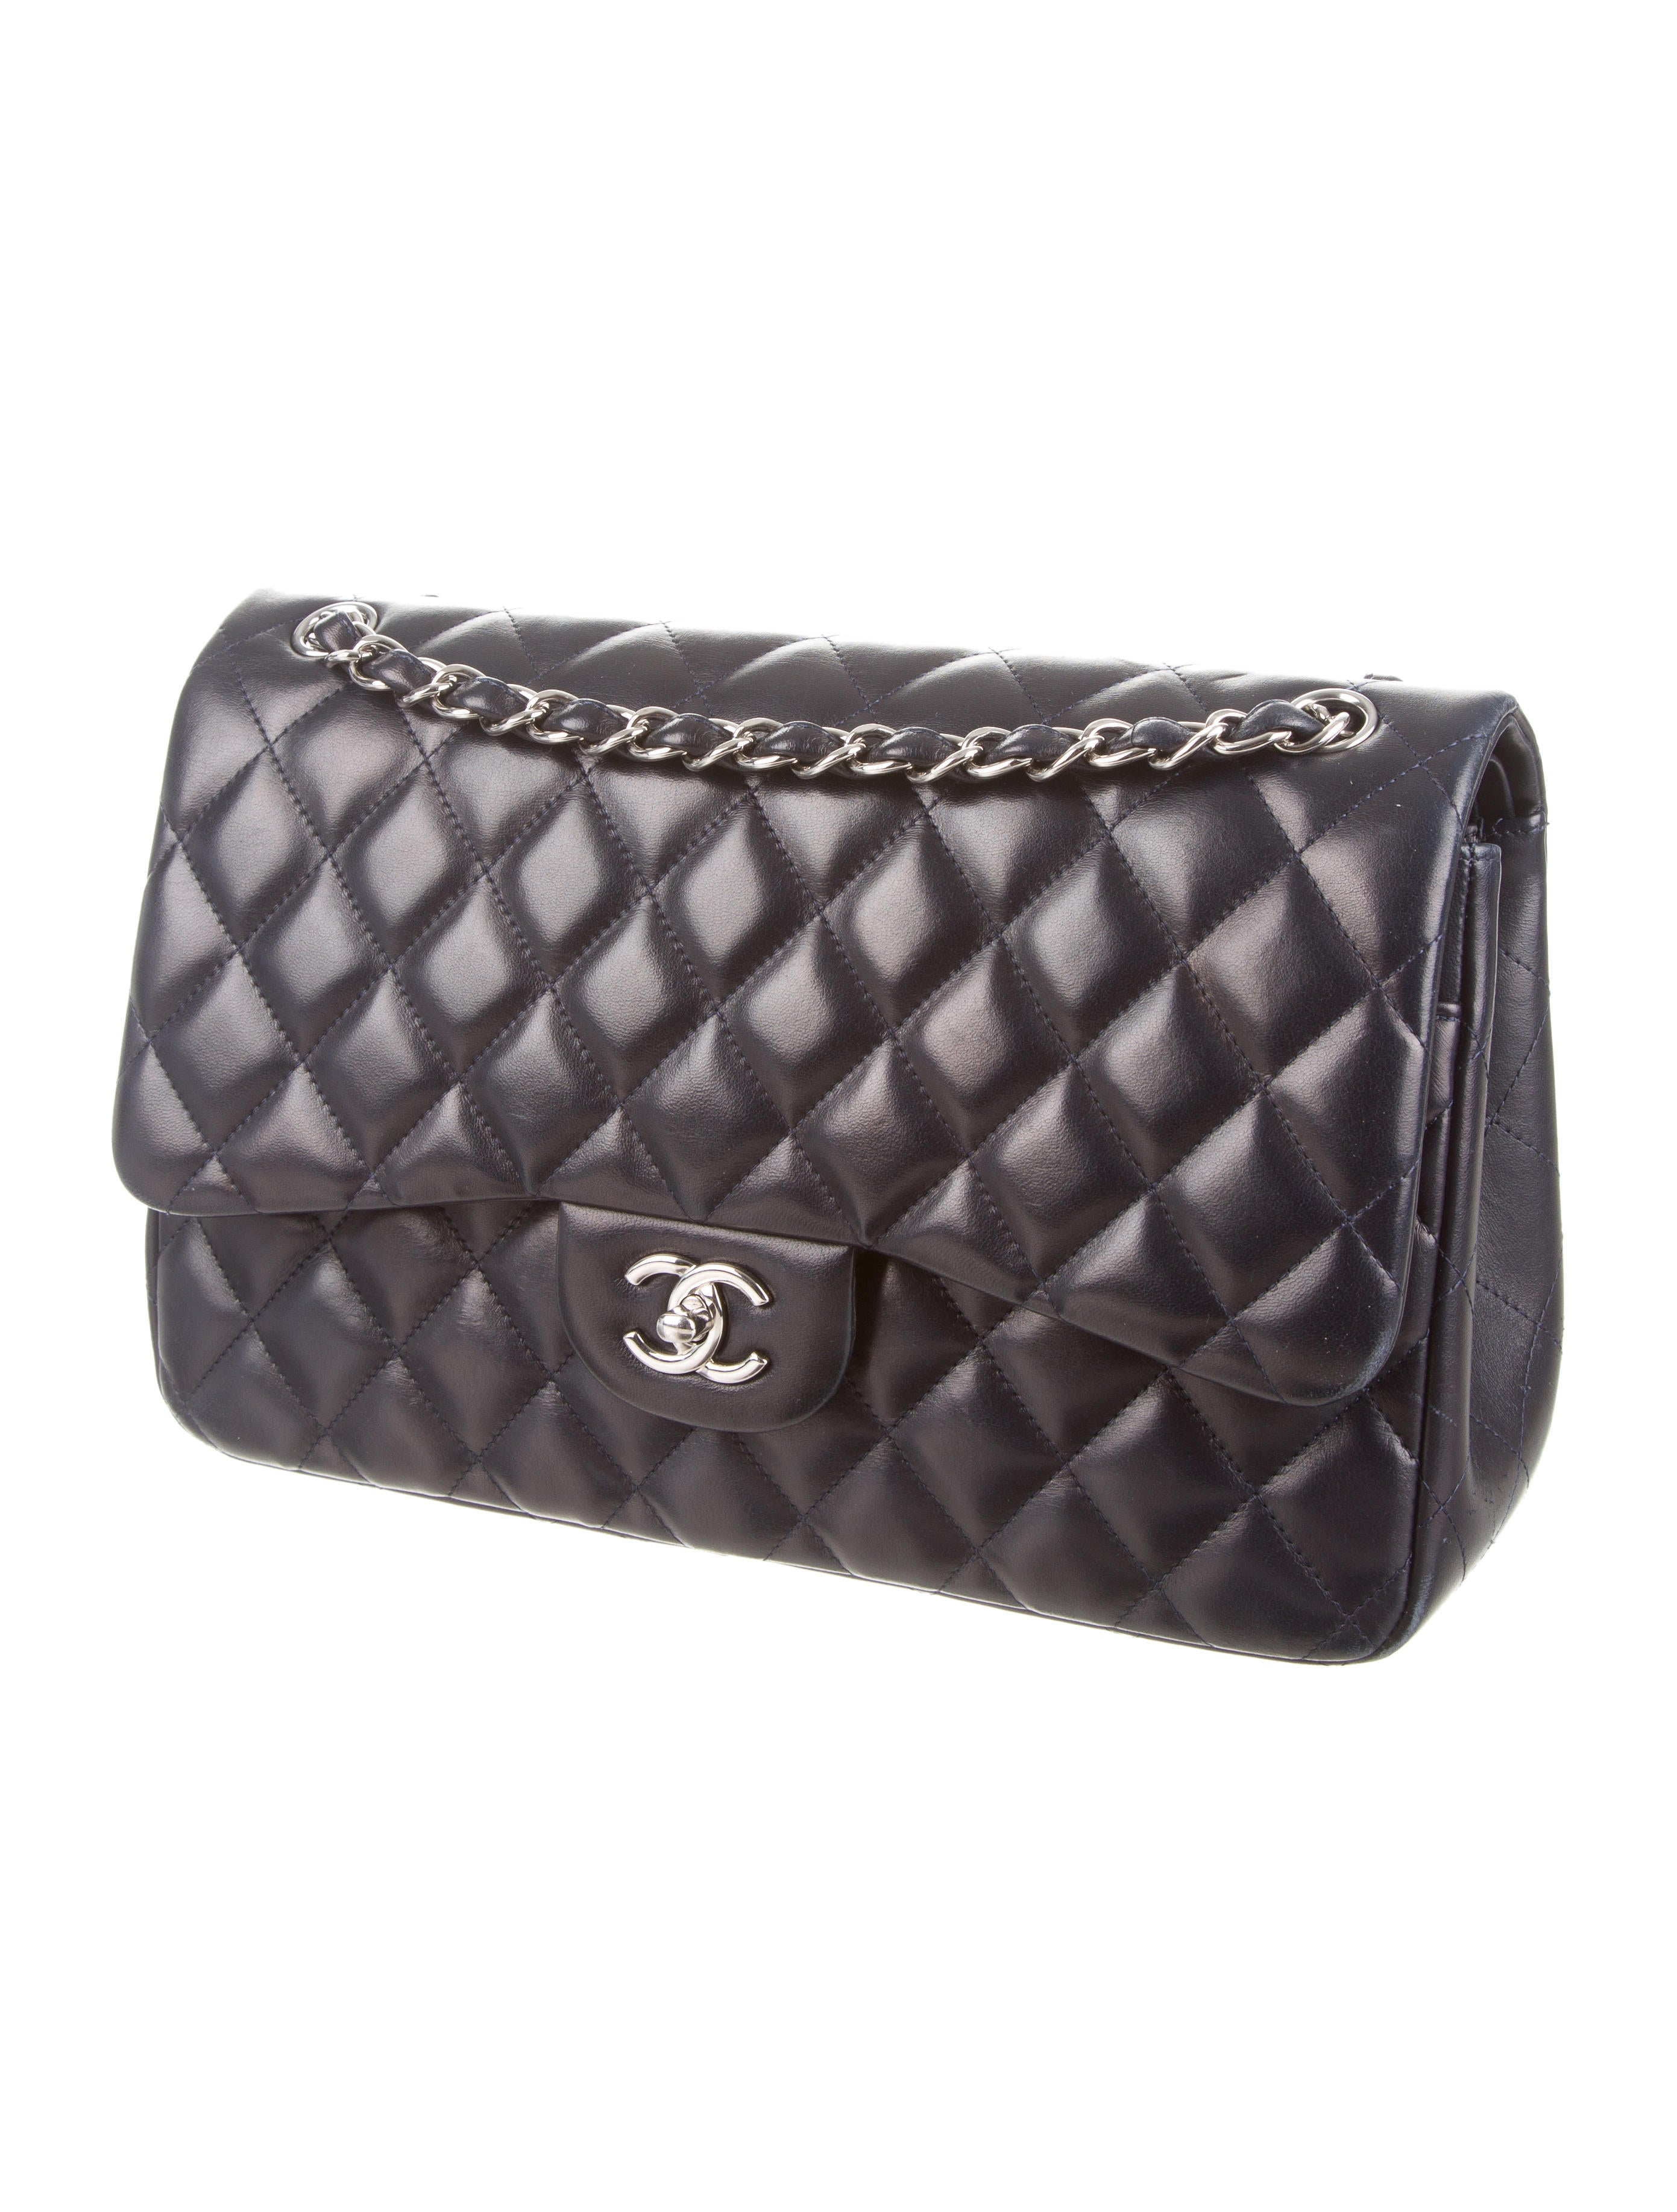 53480dce9b80dc Chanel Women's Classic Jumbo Flap Bag A01113 | Stanford Center for ...